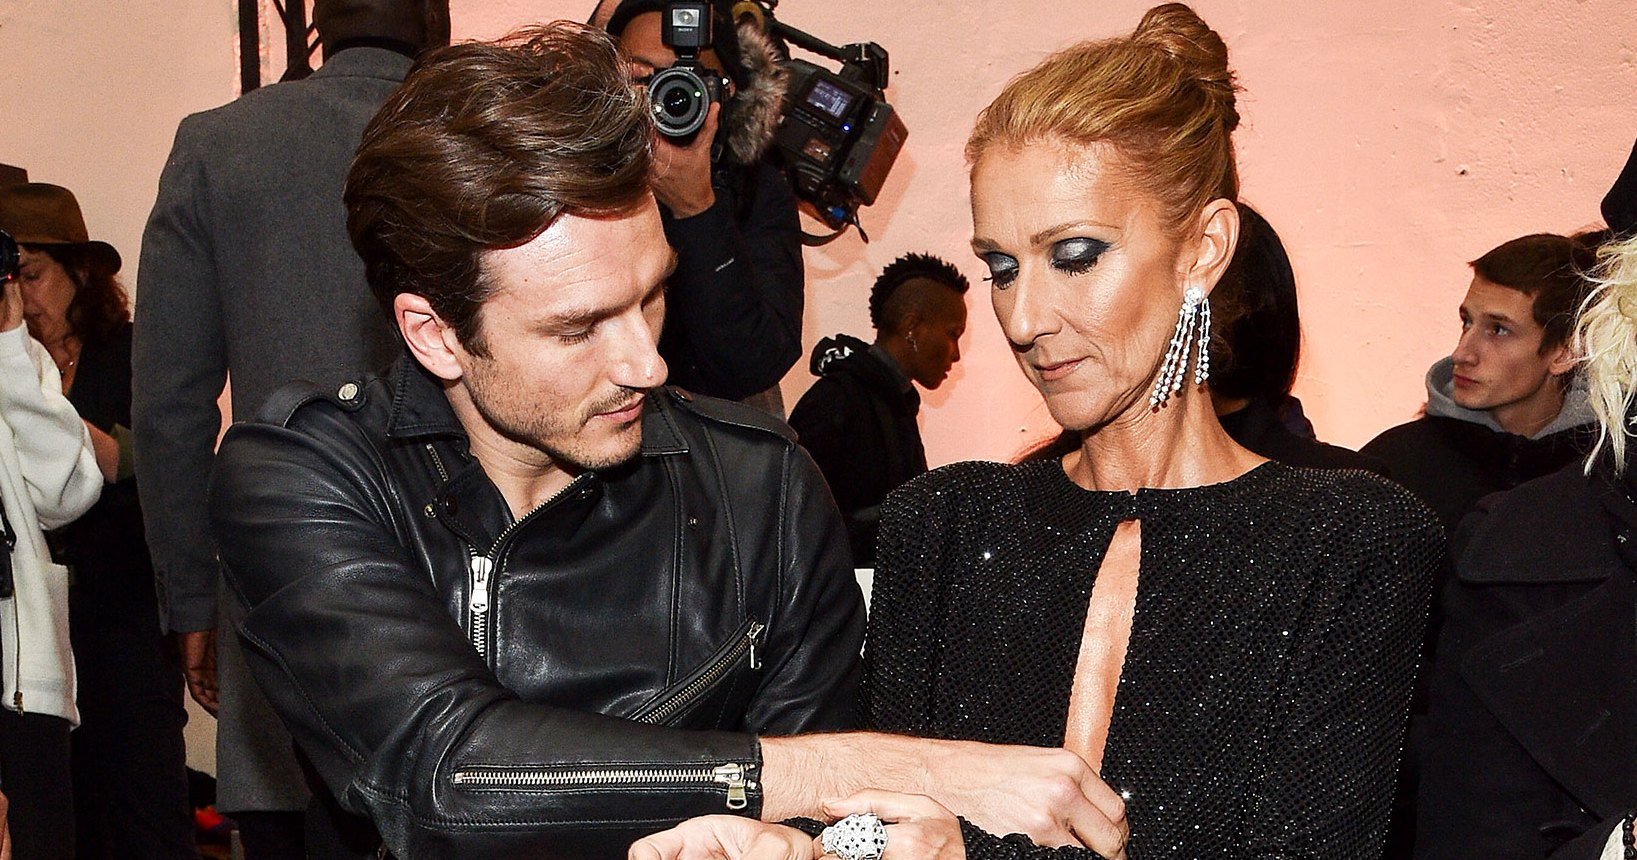 Celine Dion's Backup Dancer Rescues Her From Wardrobe Malfunction During Paris Fashion Week